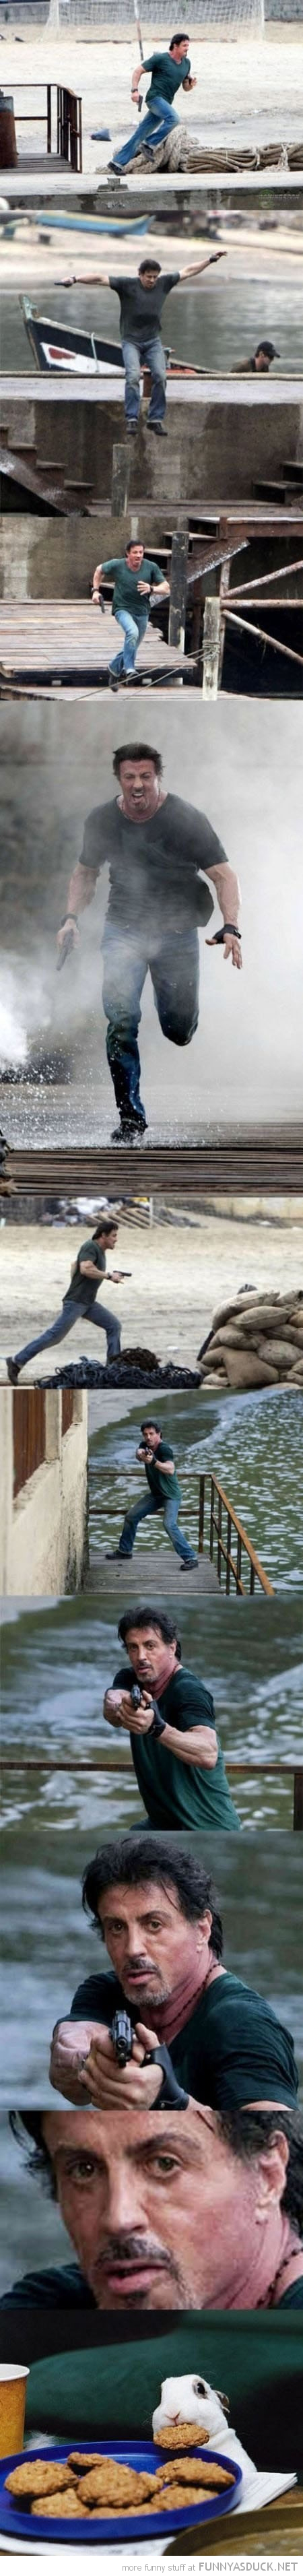 sylvester stallone running gun movie shoot rabbit stealing cookies funny pics pictures pic picture image photo images photos lol